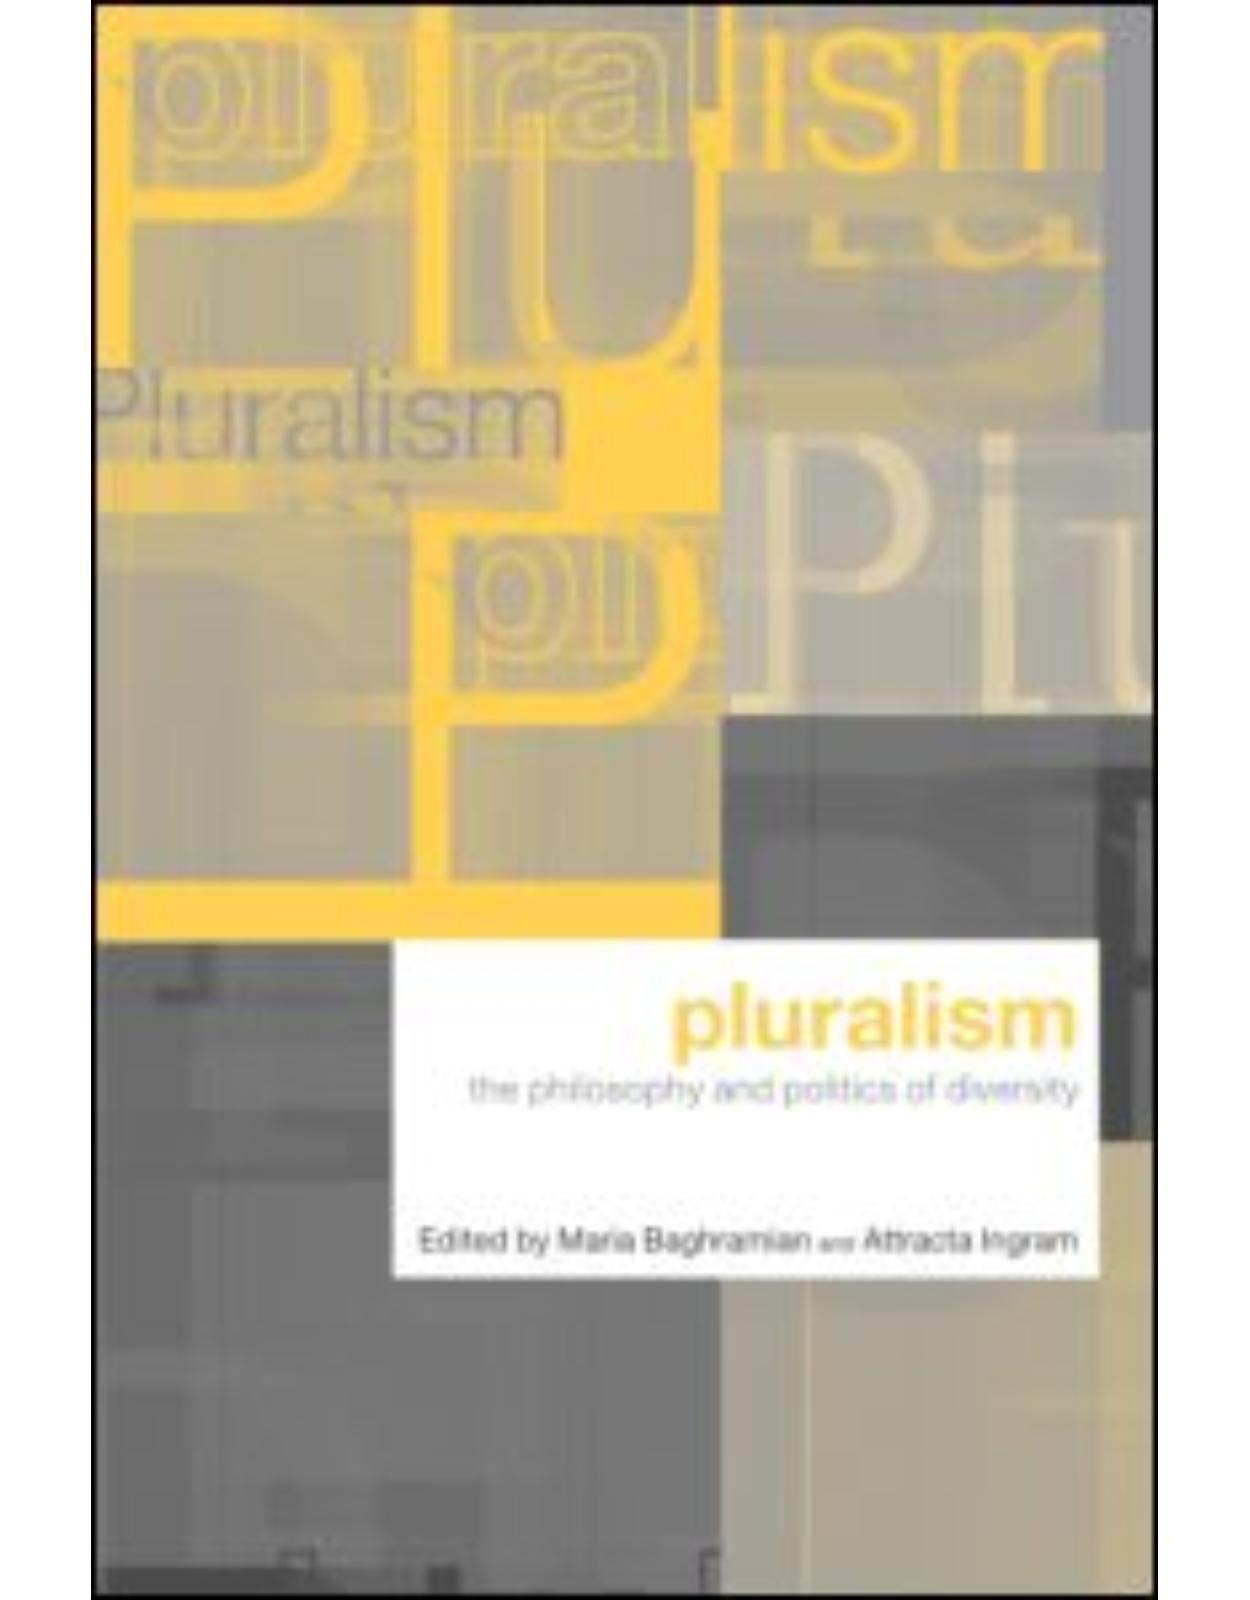 Pluralism The Philosophy and Politics of Diversity